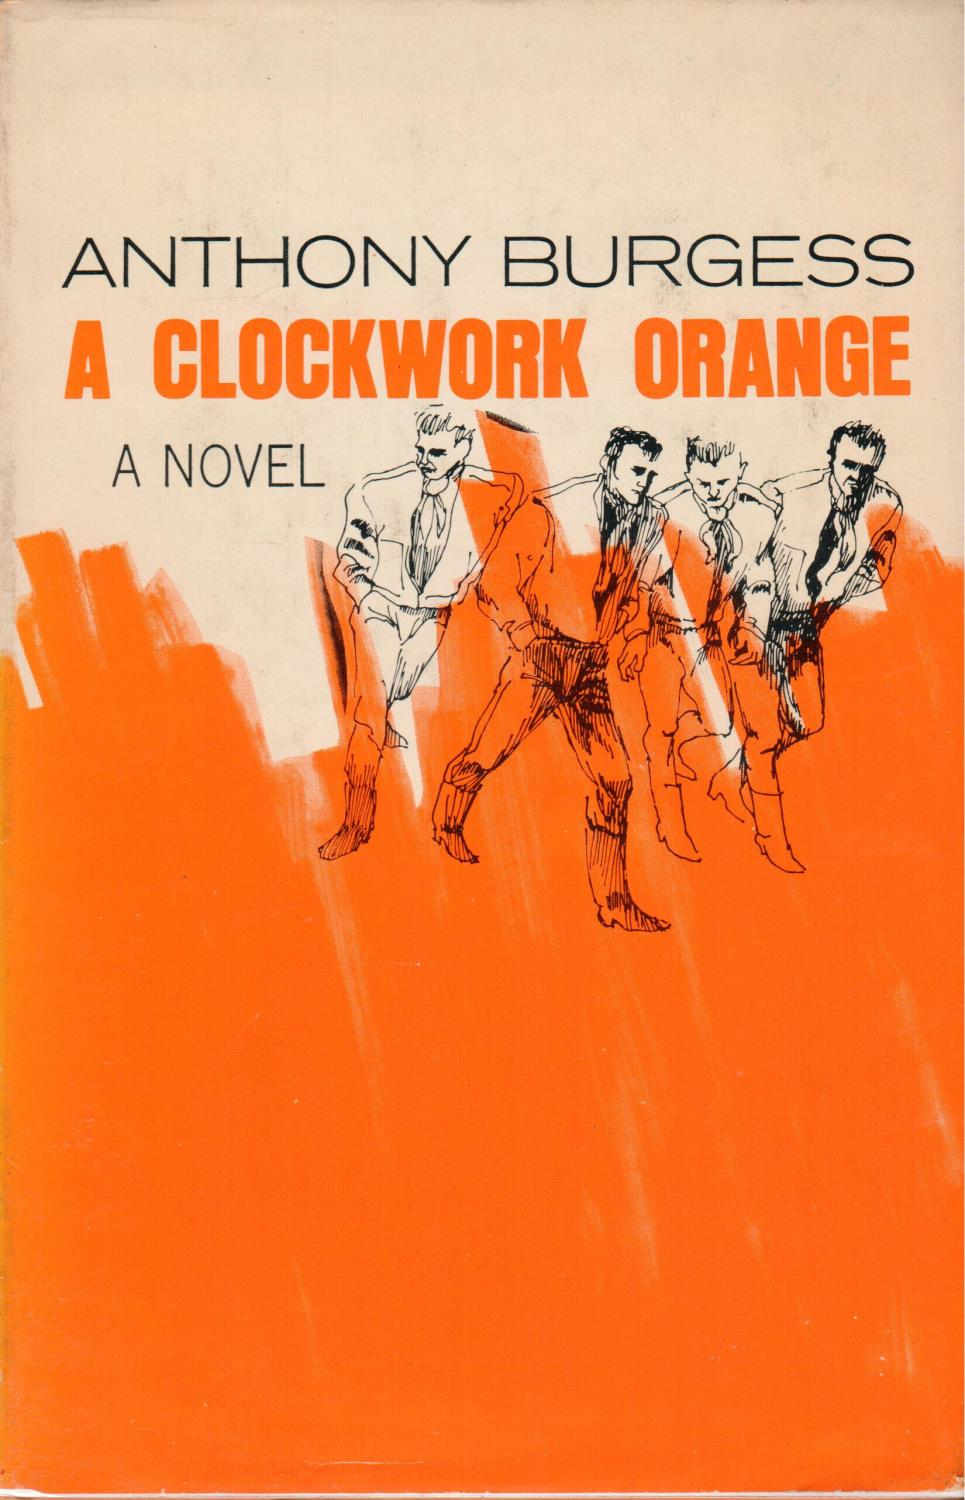 understanding the youth in a clockwork orange a novel by anthony burgess A clockwork orange summary anthony burgess and characters so you can understand them on your burgess's most memorable novel, a clockwork orange.